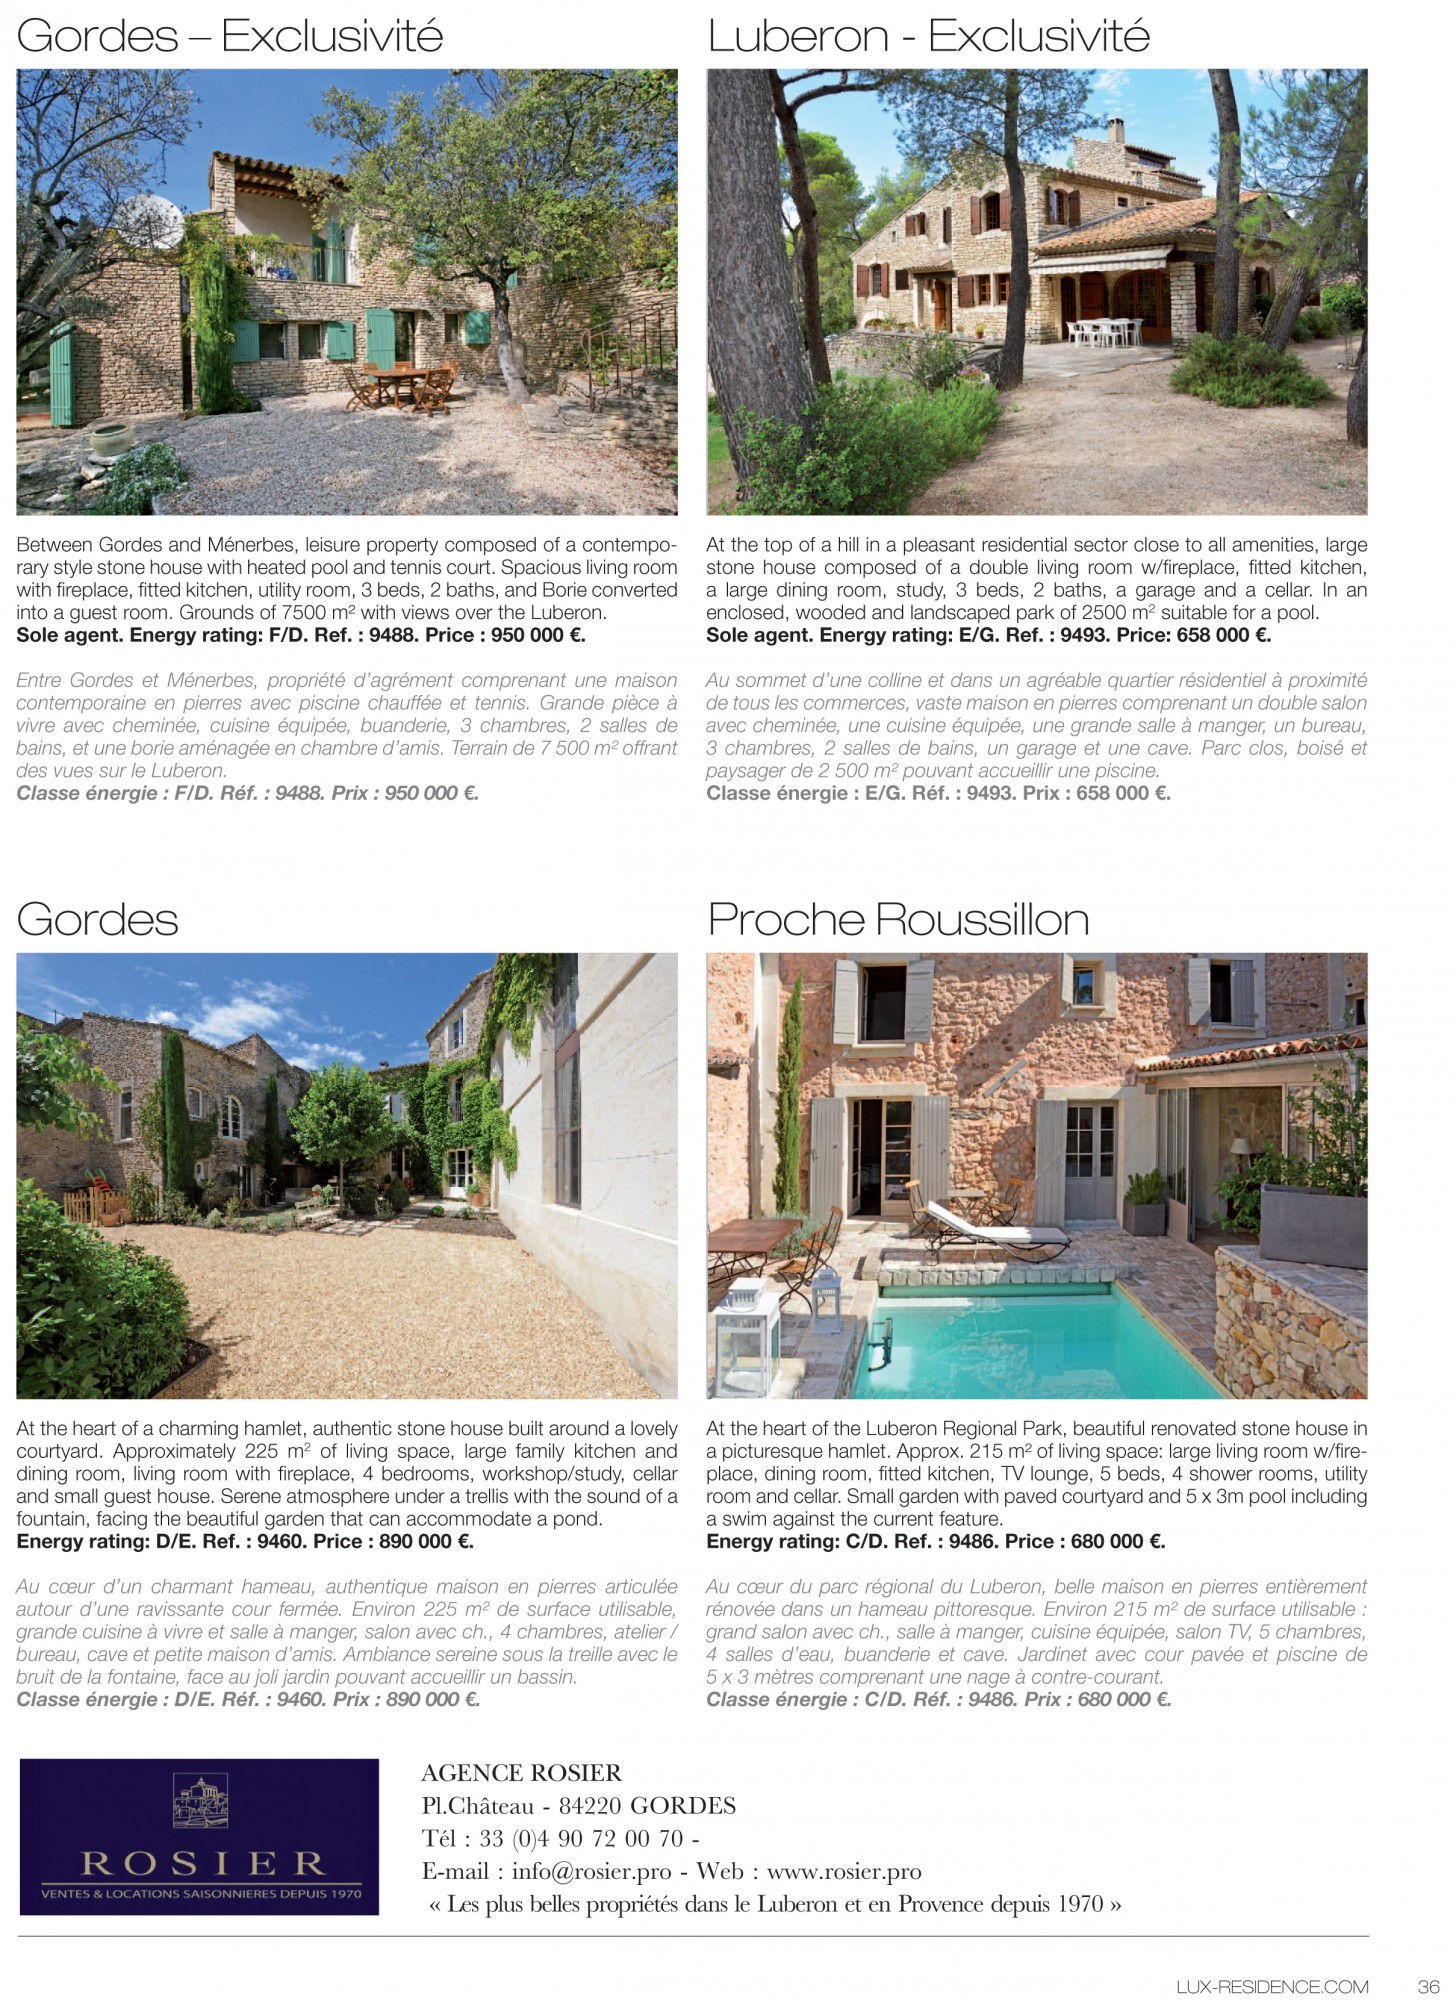 Cheminee Du Luberon Lux Residence Luxurious Real Estate Magazine Rosier